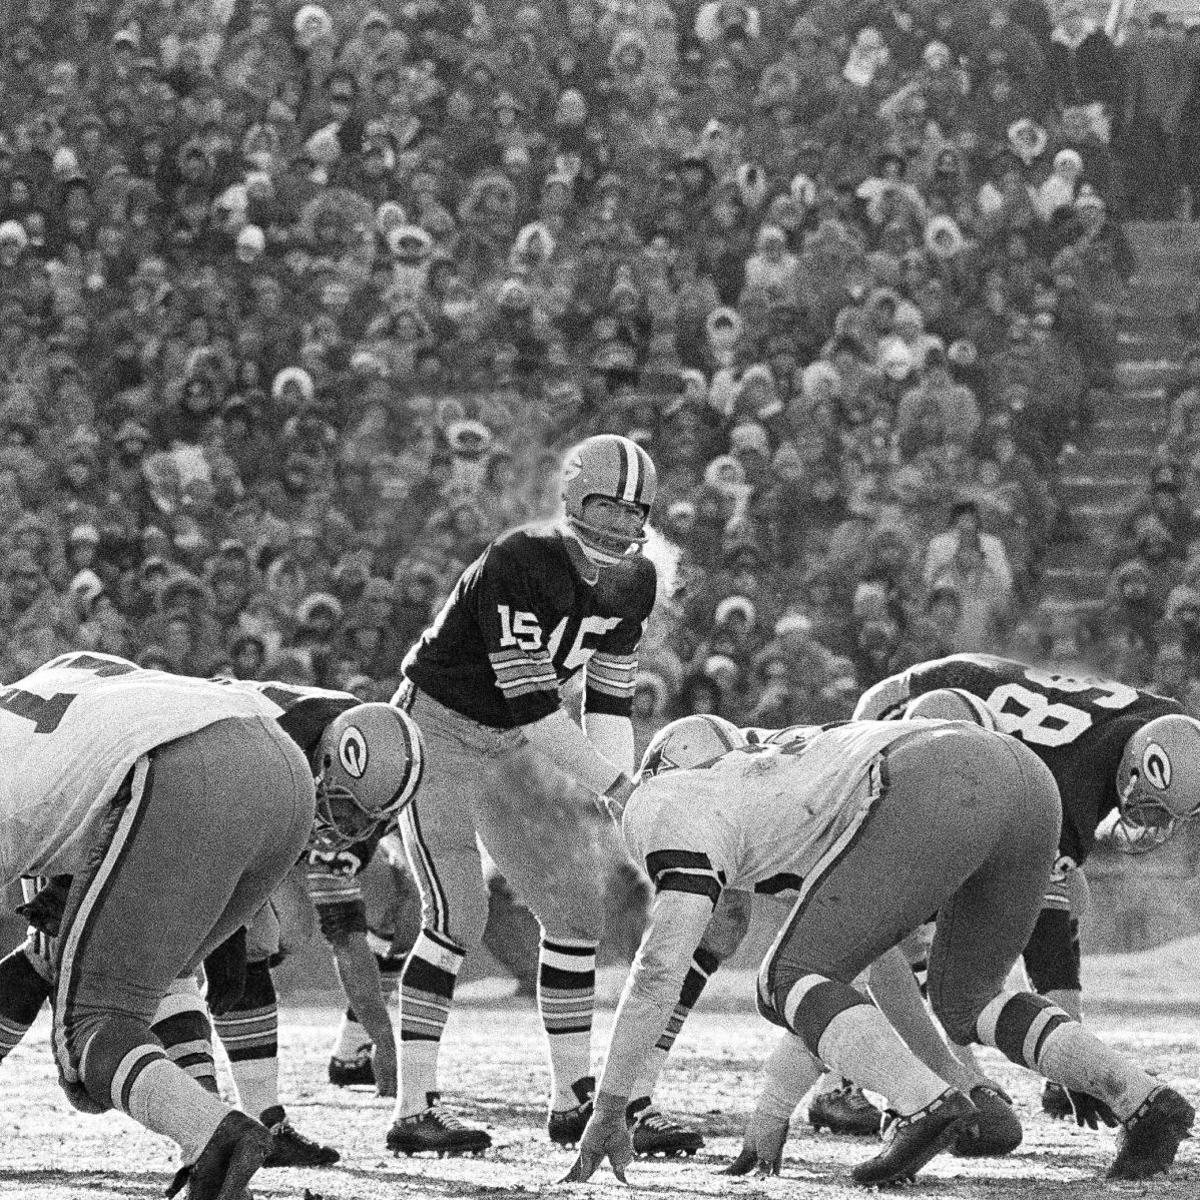 On Wisconsin: Letters from Bart Starr form respect and admiration